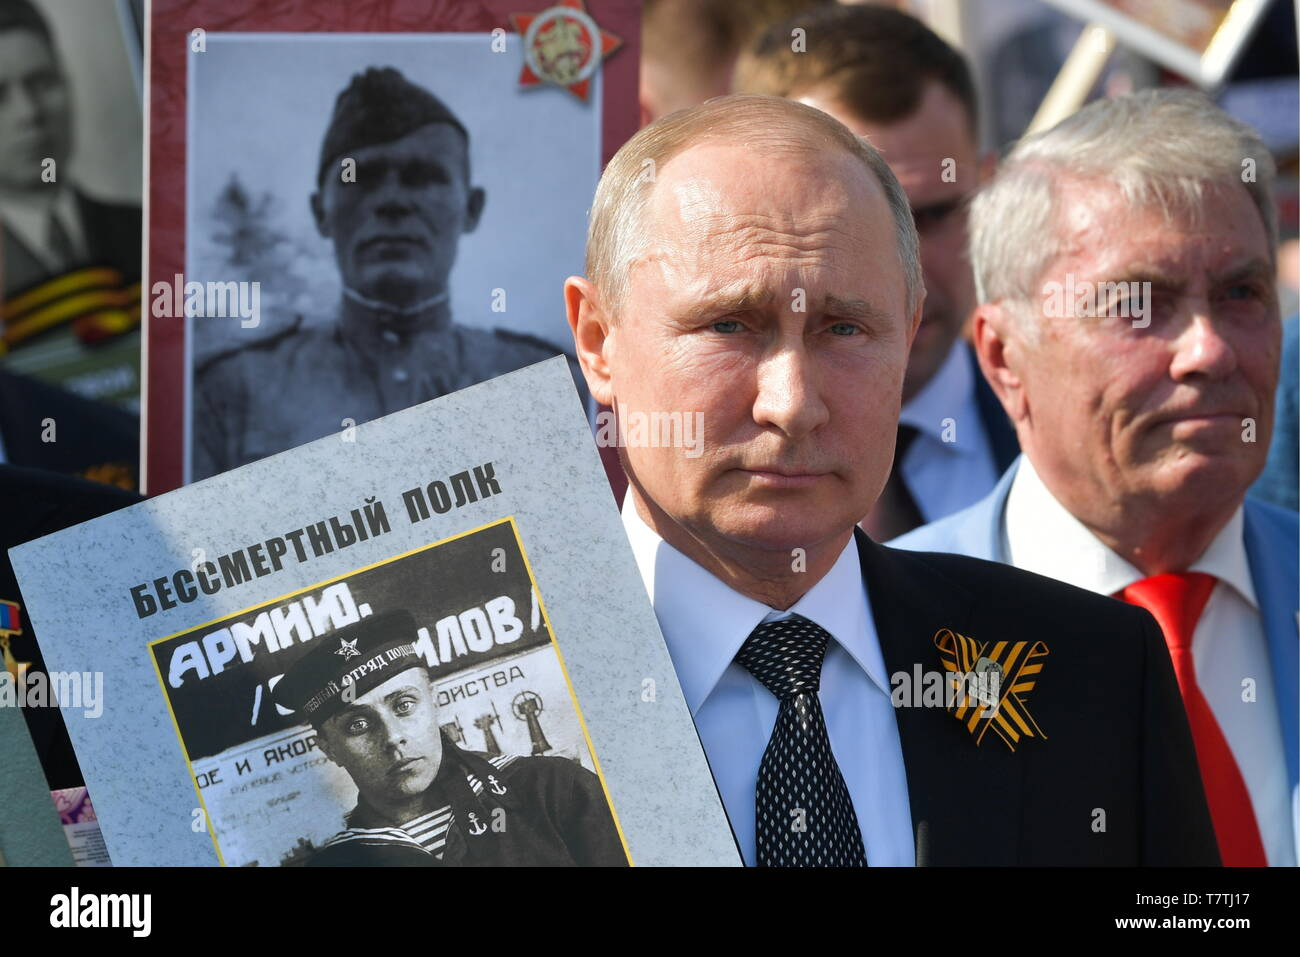 Moscow, Russia. 09th May, 2019. MOSCOW, RUSSIA - MAY 9, 2019: Russia's President Vladimir Putin (front) carries a portrait of his father Vladimir Spiridonovich Putin (1911-1998), who fought in World War II, as he takes part in the Immortal Regiment march in Red Square to mark the 74th anniversary of the Victory over Nazi Germany in the Great Patriotic War, the Eastern Front of World War II. Alexei Druzhinin/Russian Presidential Press and Informationa Office/TASS Credit: ITAR-TASS News Agency/Alamy Live News - Stock Image